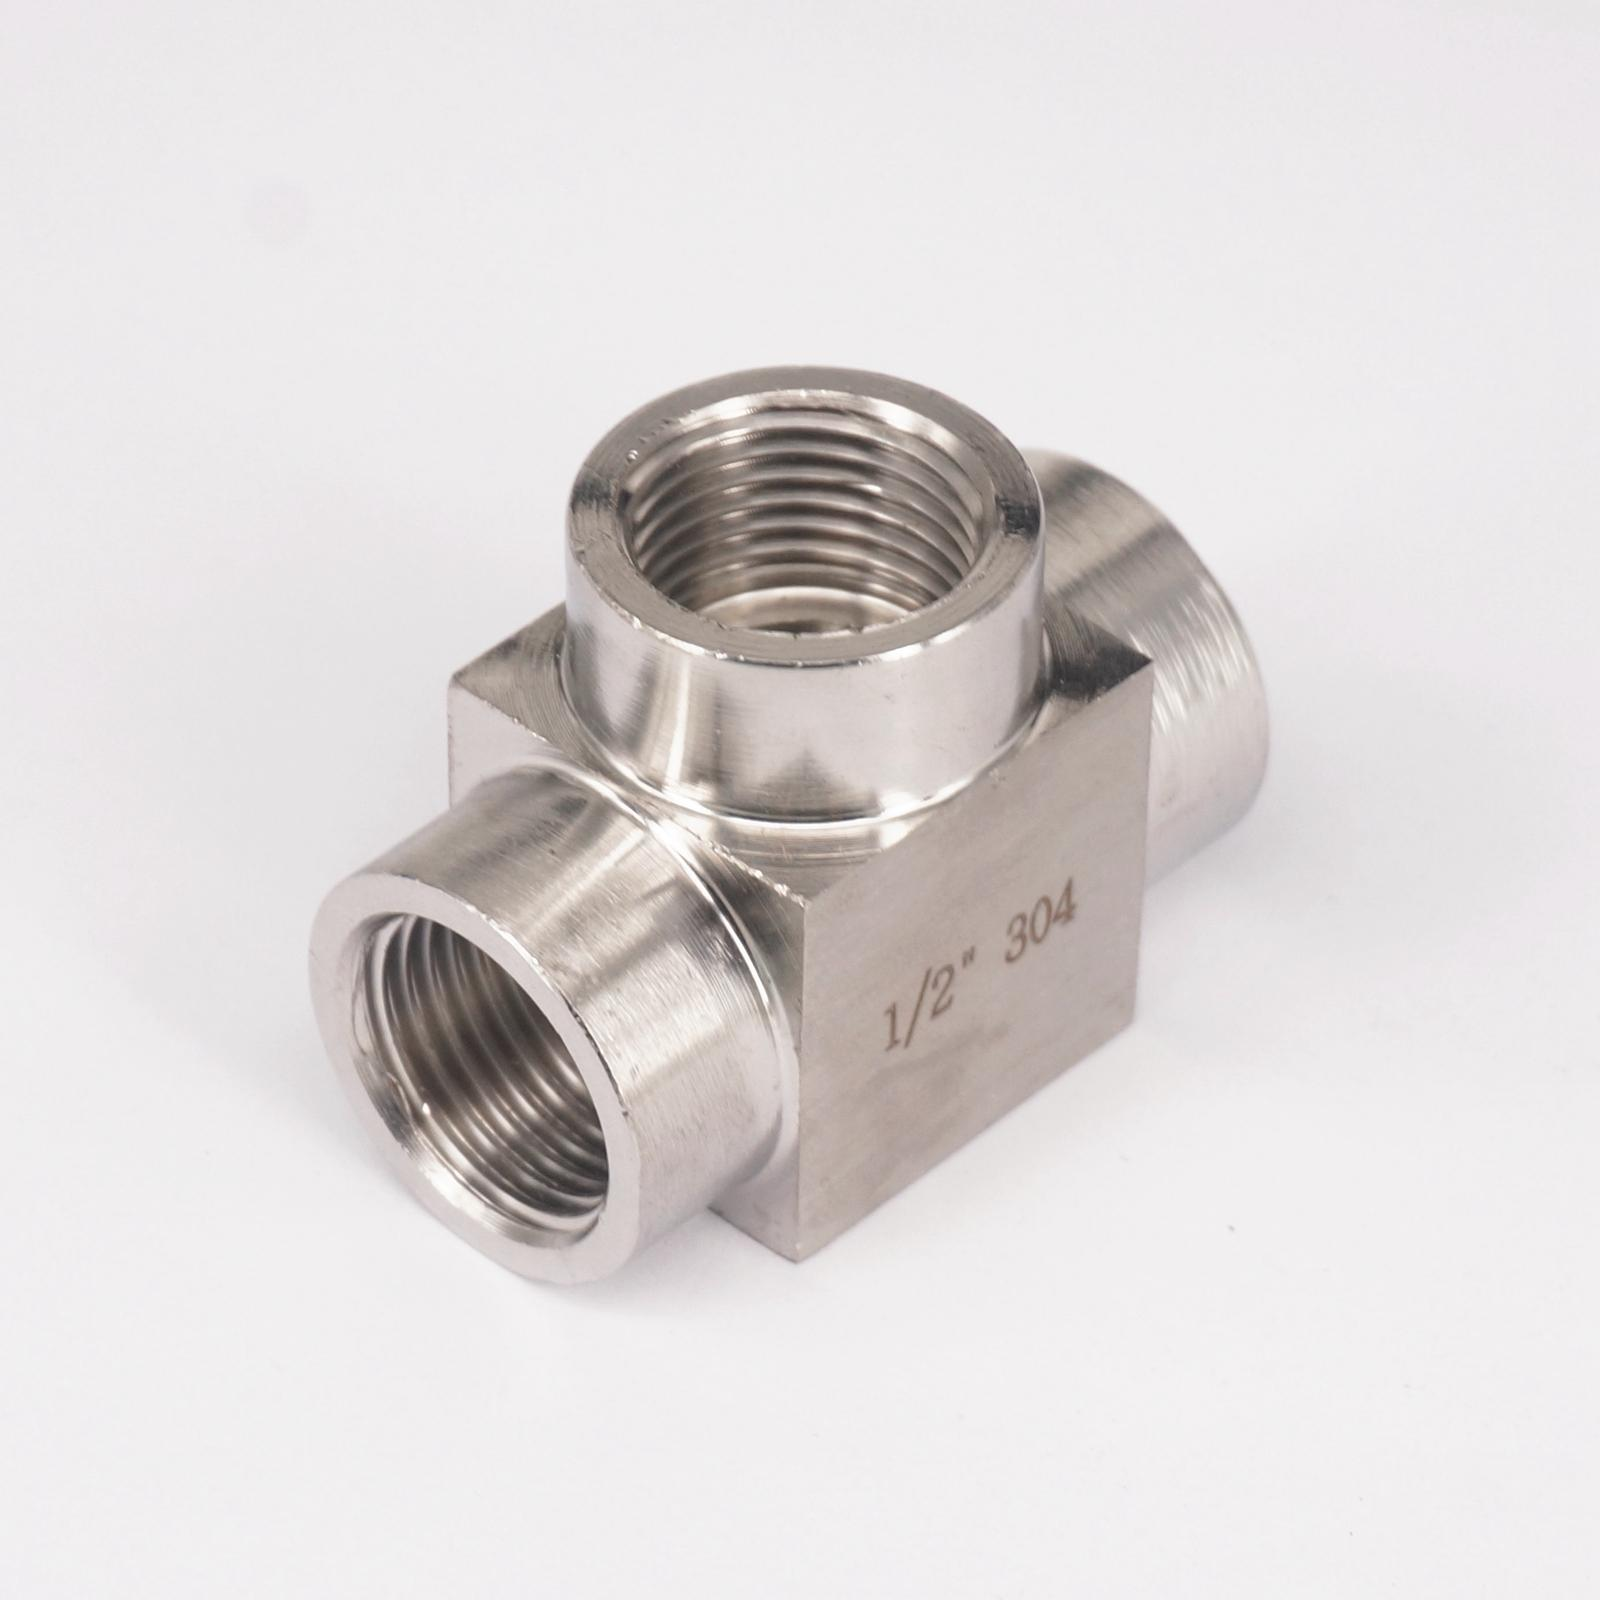 все цены на Tee 3 Way 304 Stainless Steel Pipe Fitting Connector Adapter Equal 1/2